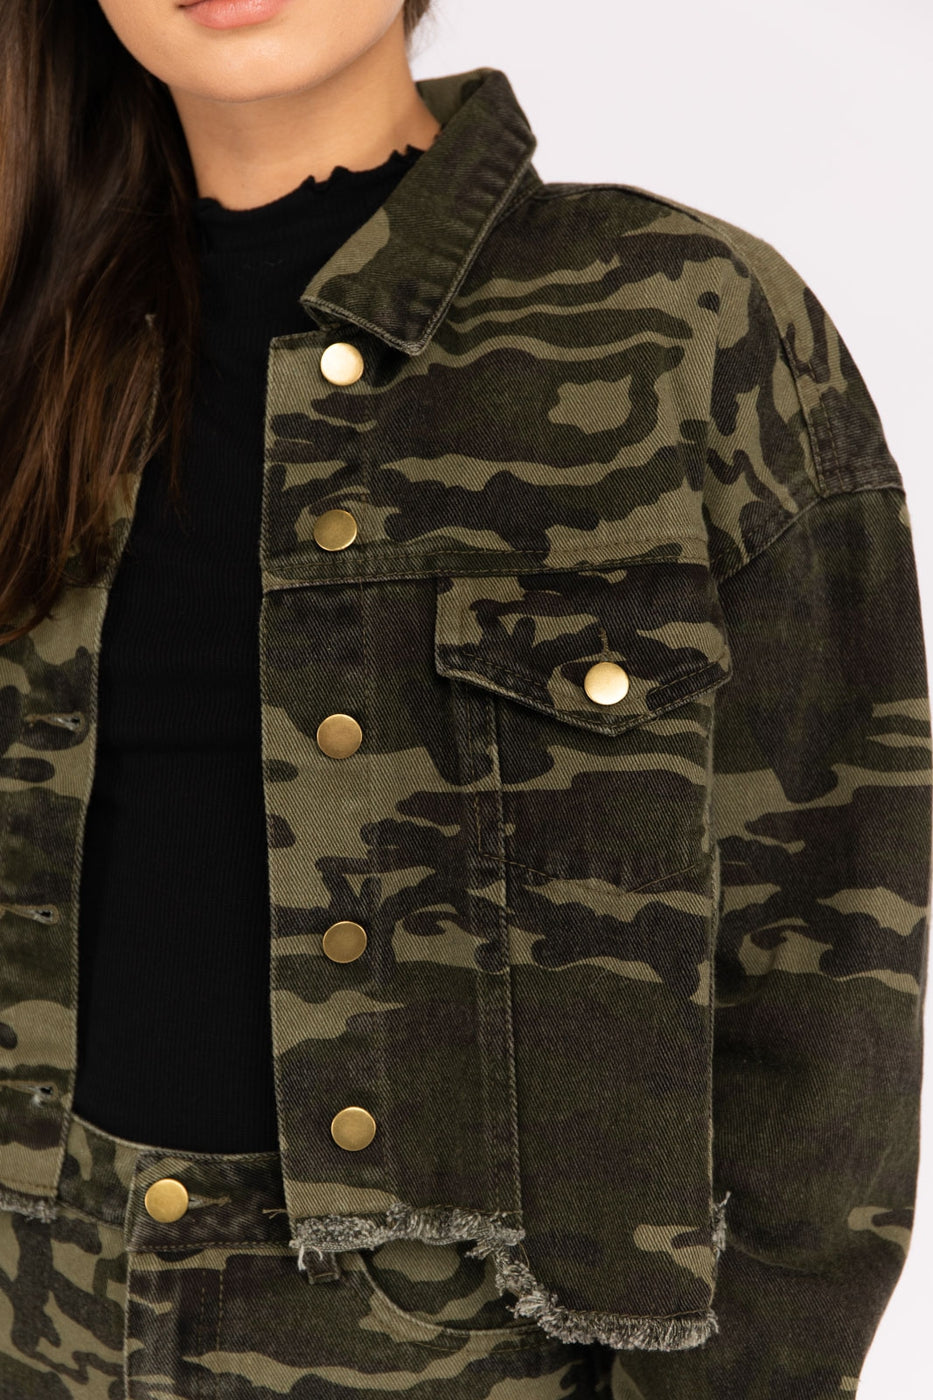 Camouflage Distressed Hem Jacket Siin Bees